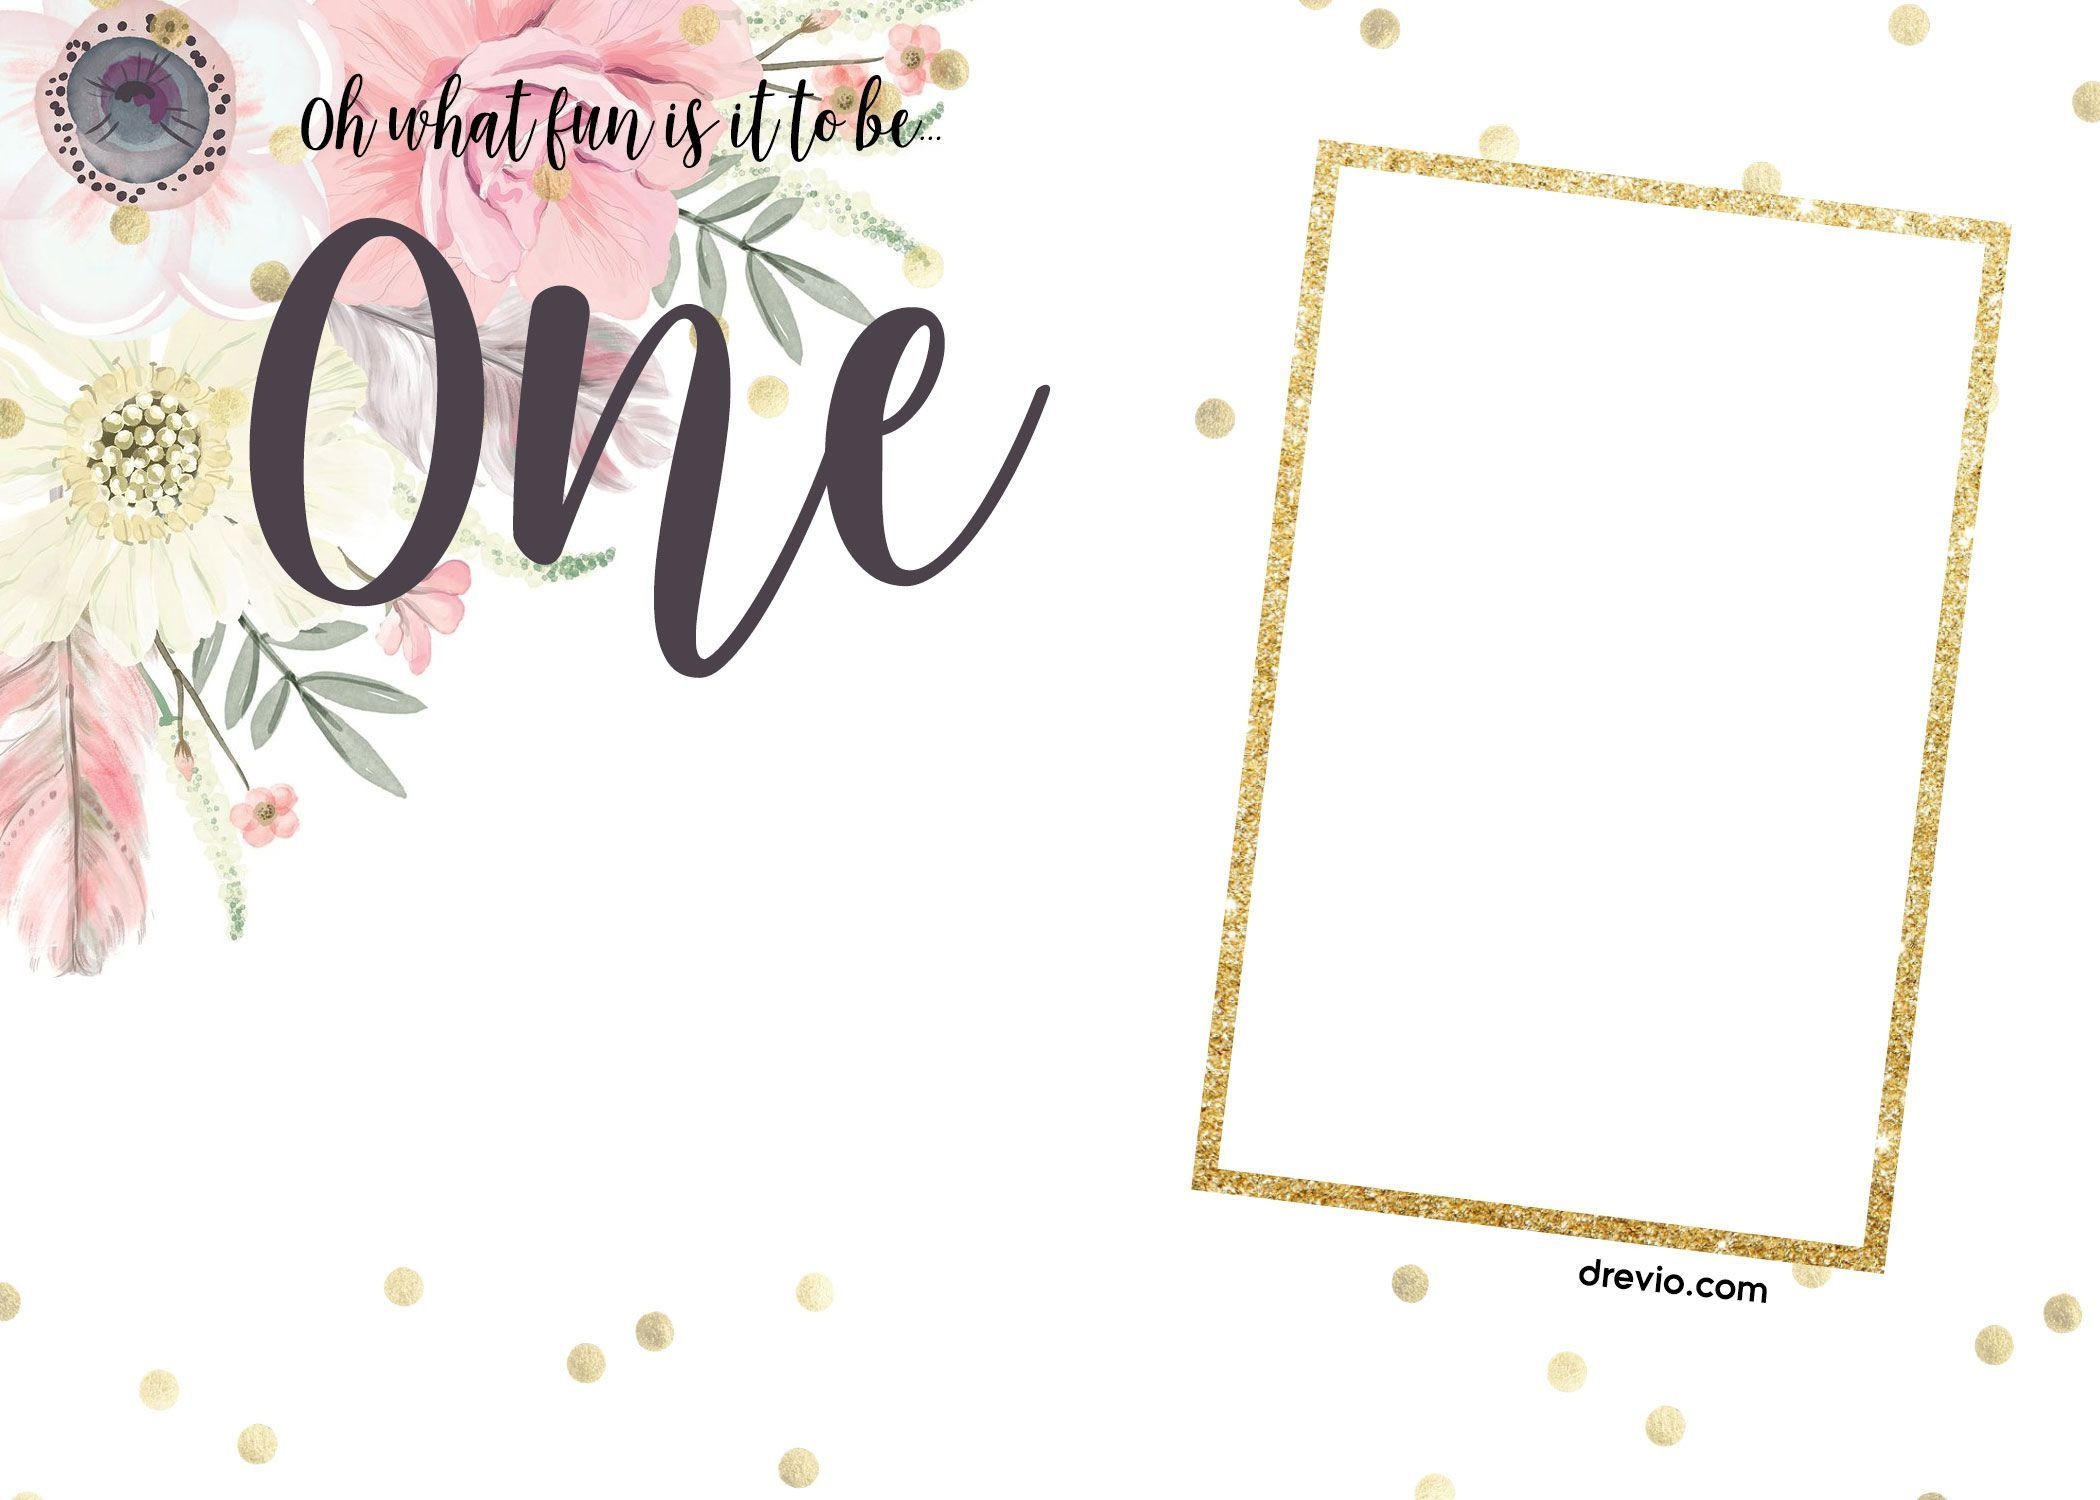 001 Unusual 1st Birthday Invitation Template Example  Background Design Blank For Girl First Baby Boy Free Download IndianFull